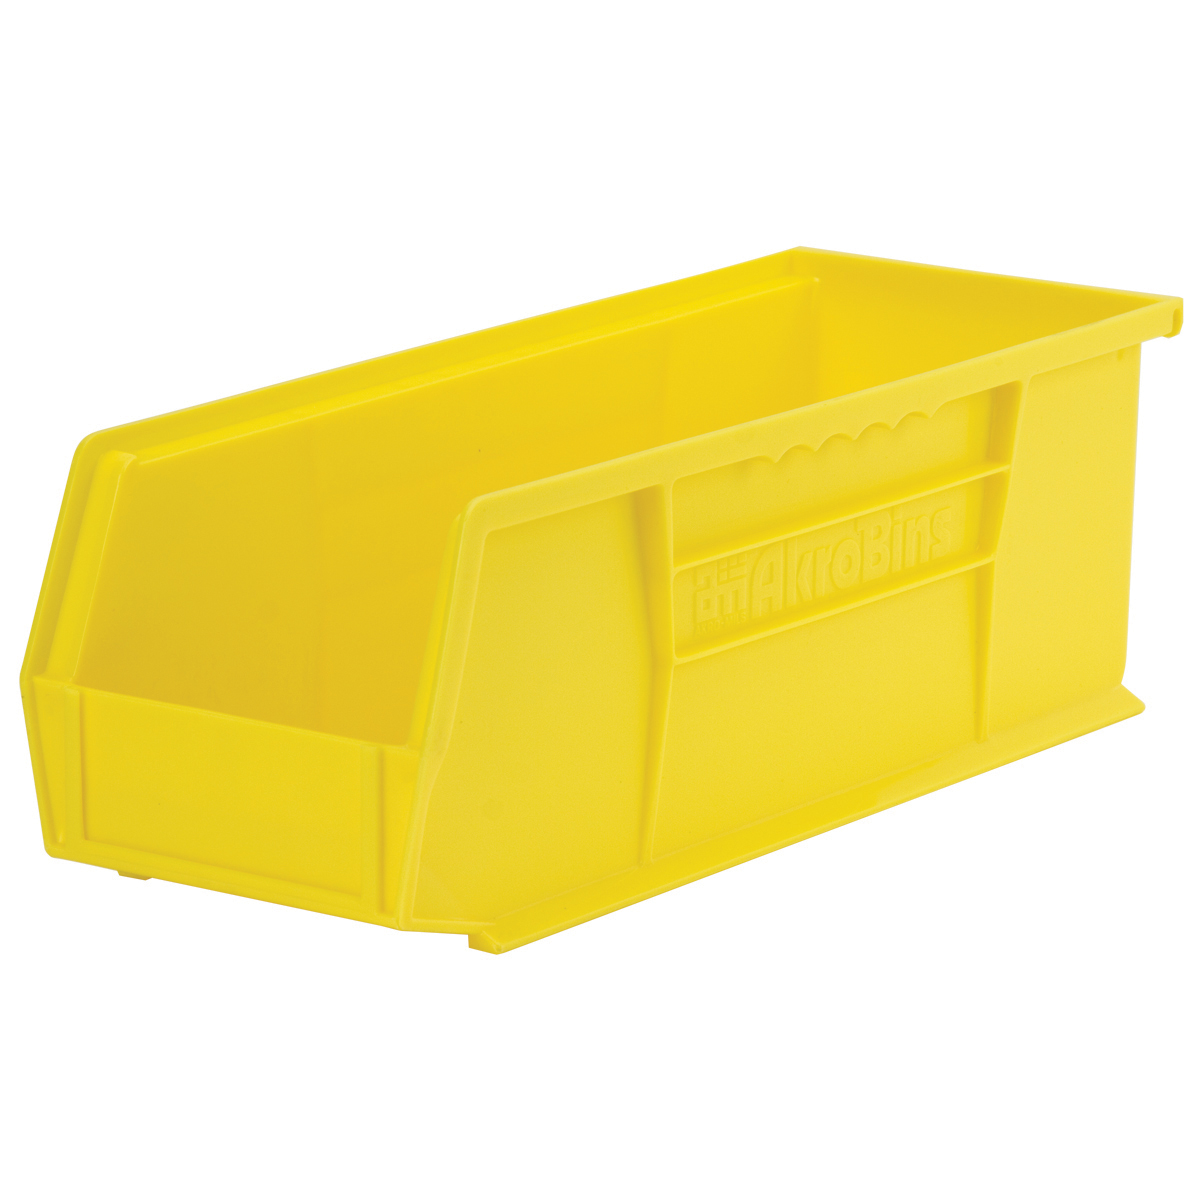 AkroBin 14-3/4 x 5-1/2 x 5, Yellow (30234YELLO).  This item sold in carton quantities of 12.